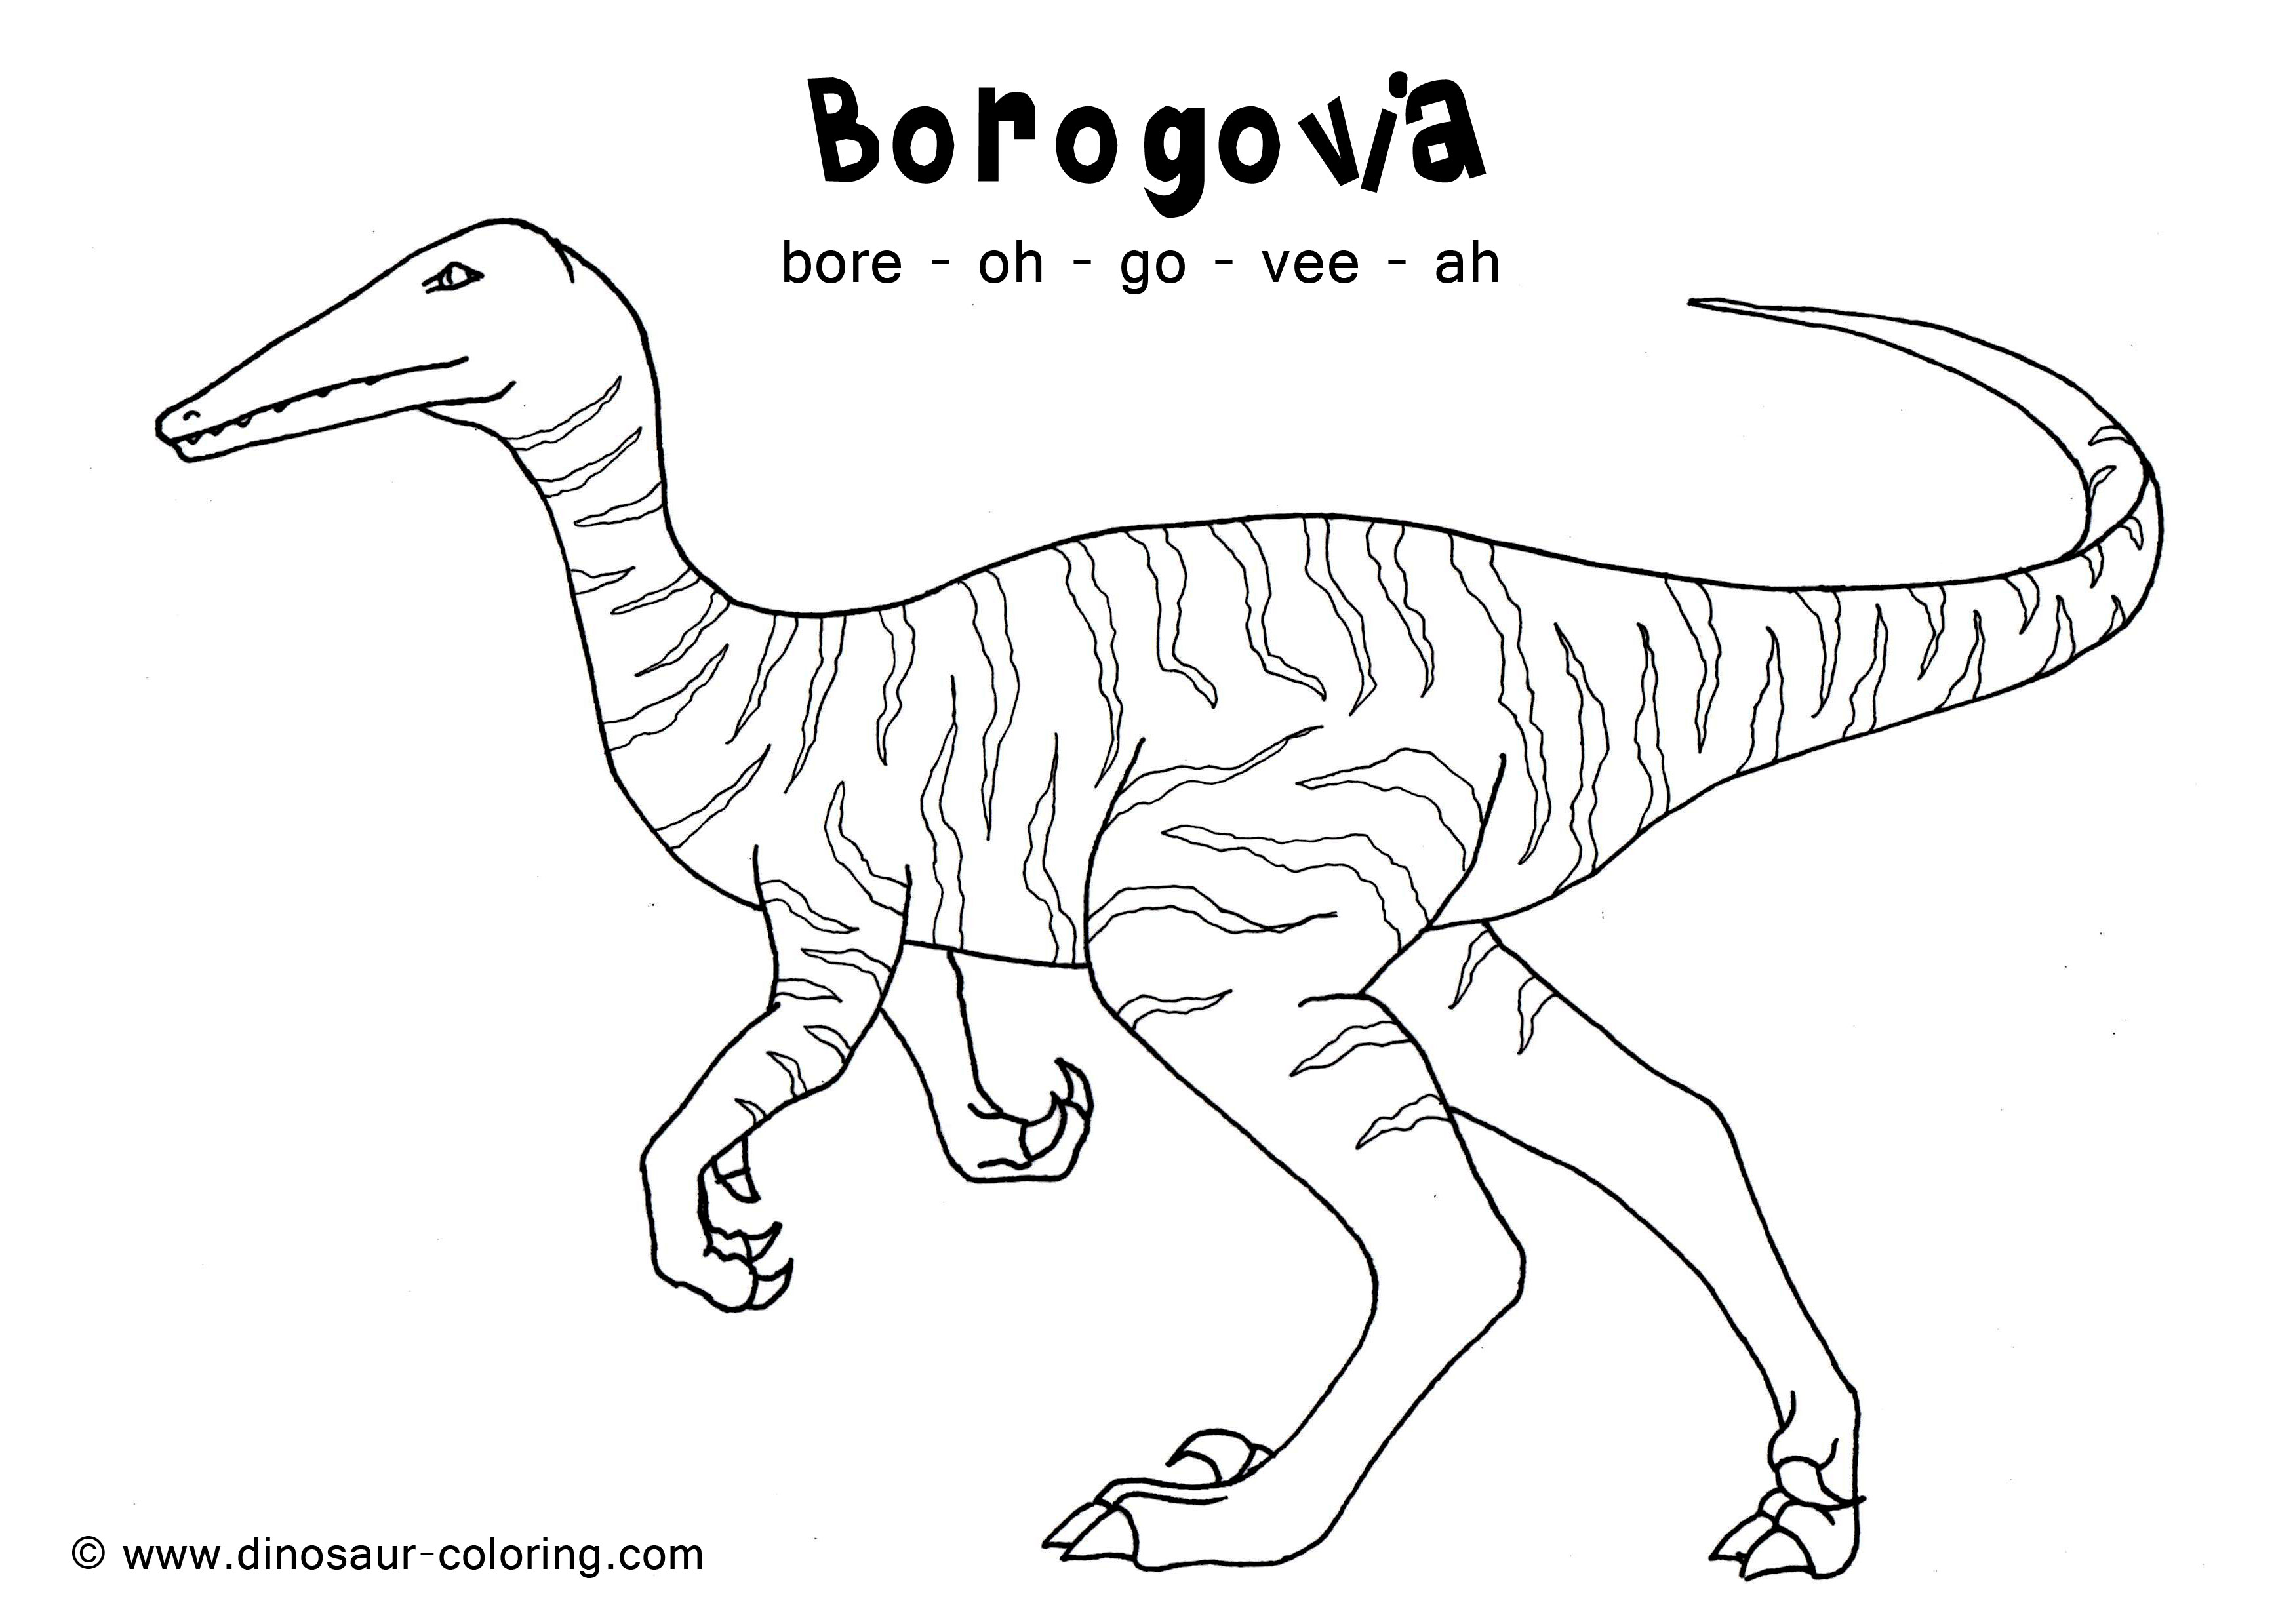 herbivore dinosaur coloring pages - photo#23